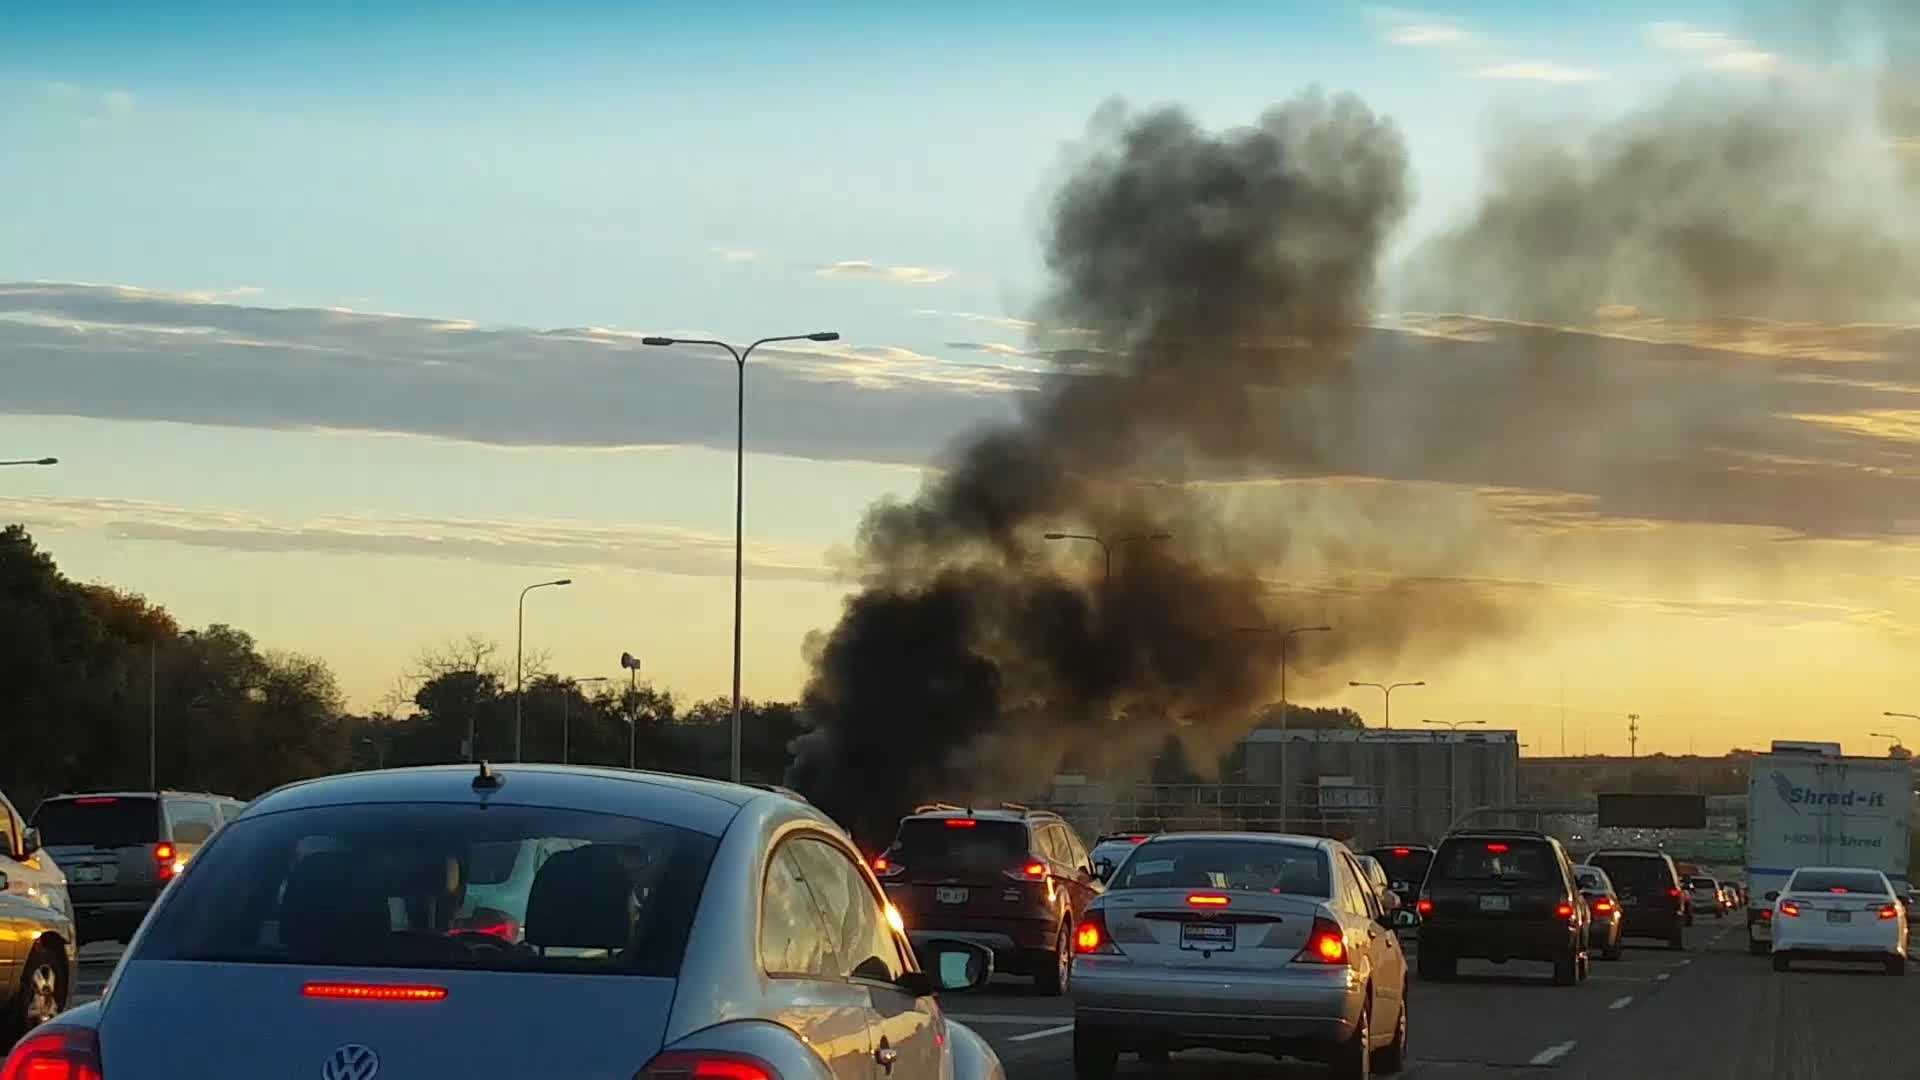 Car fire cellphone video